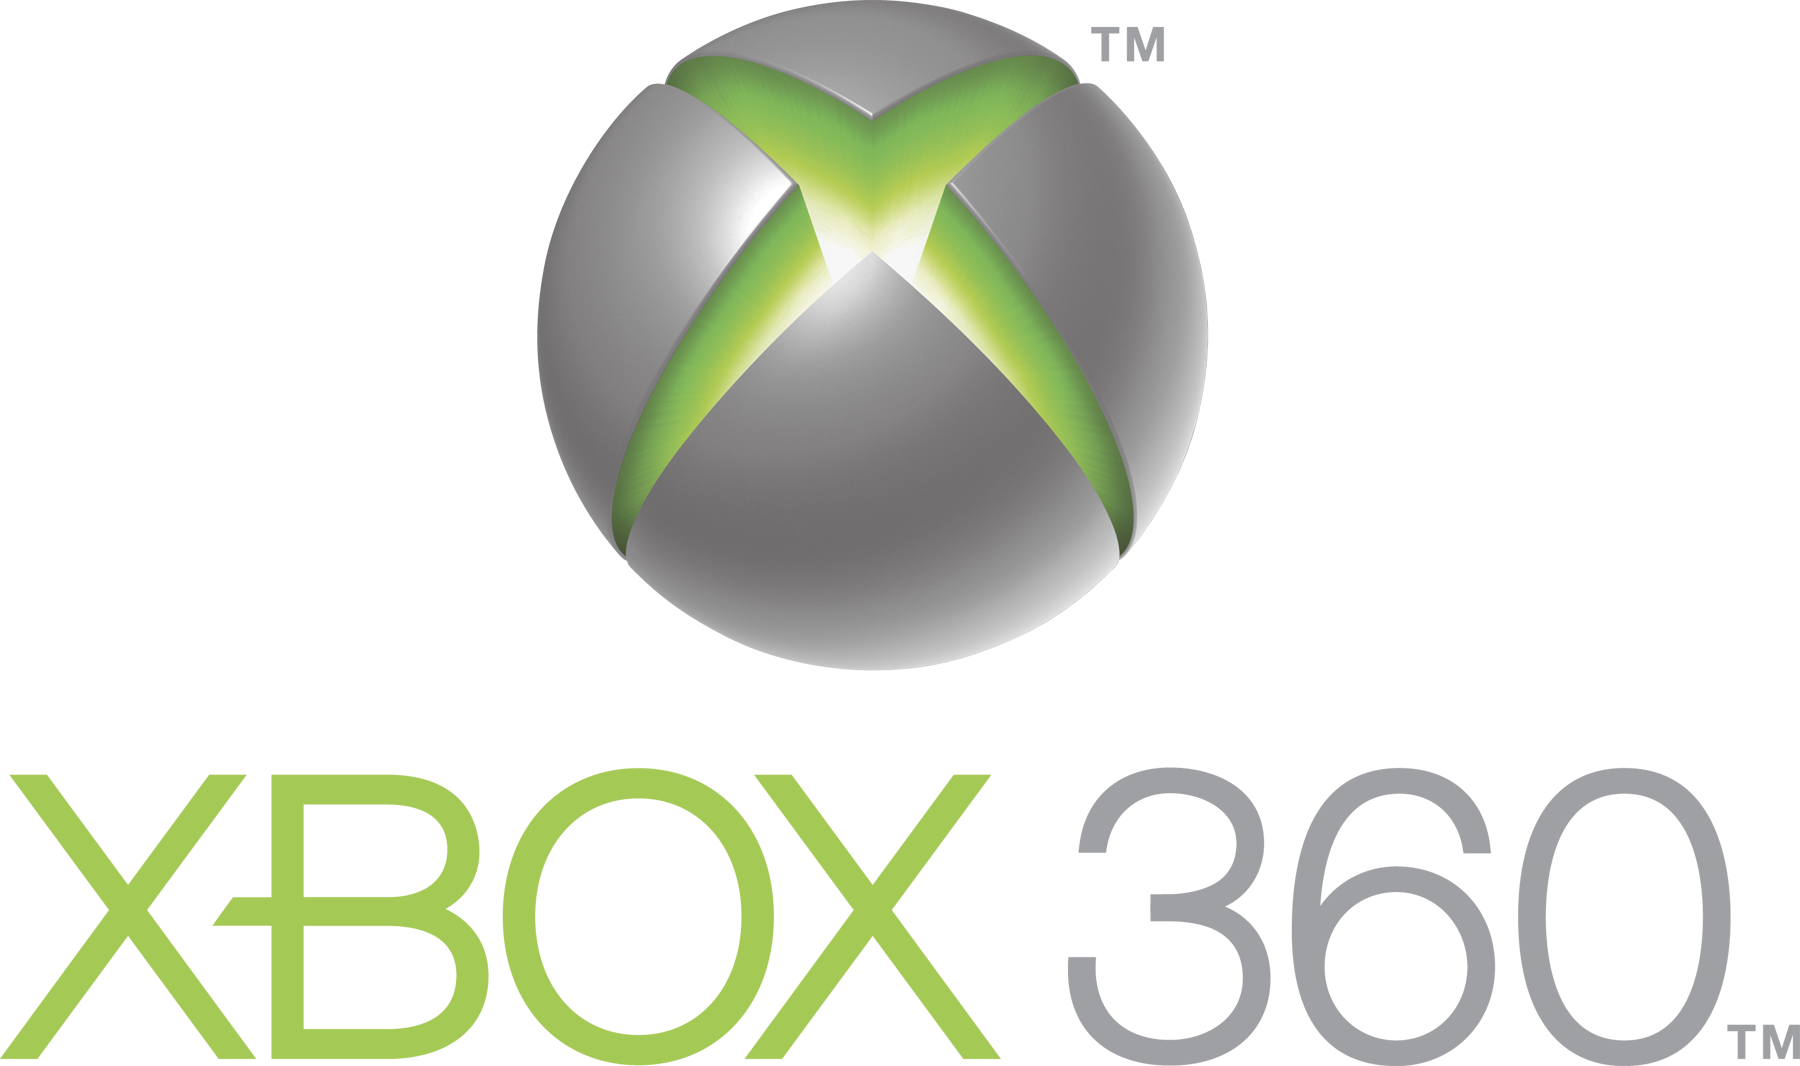 Xbox HD PNG